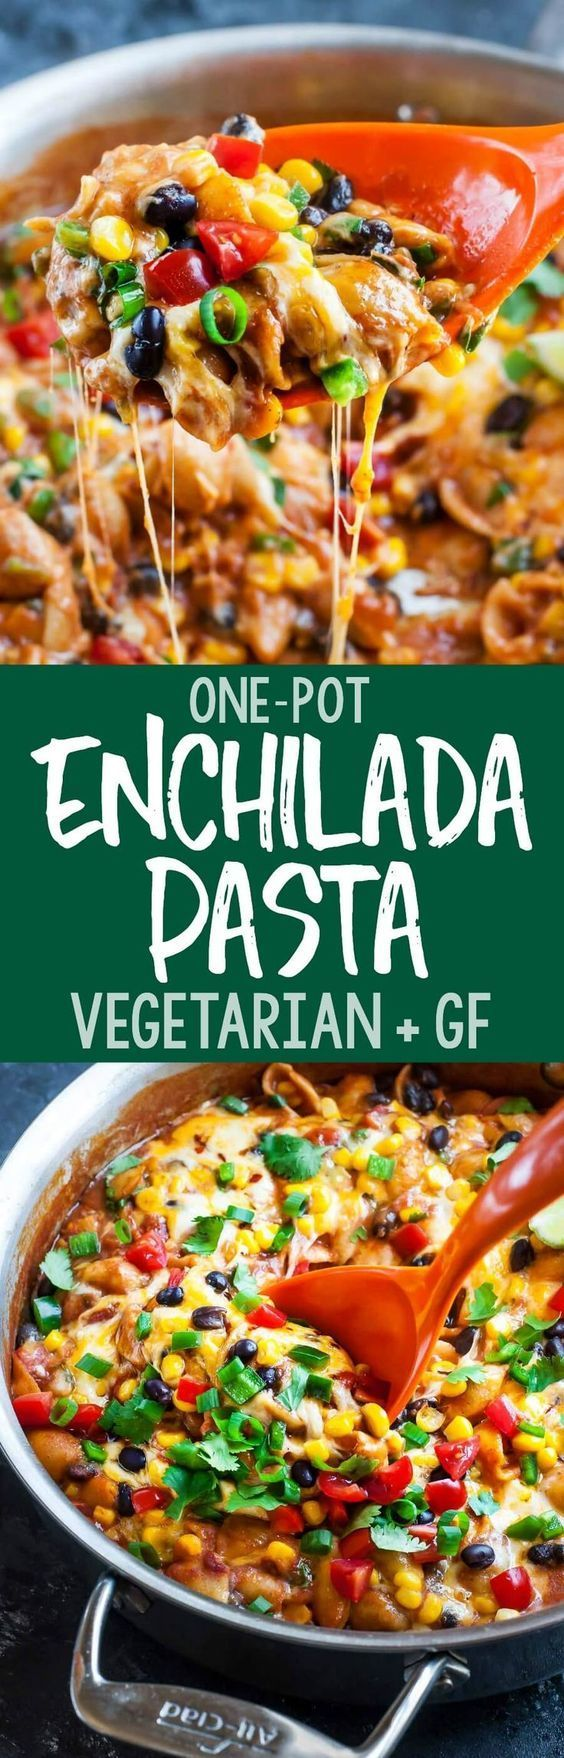 Healthy Gluten-Free One-Pot Enchilada Pasta - Made with gluten-free Chickapea Pasta, tasty vegetarian dish is quick, easy, and ready to rock your plate! @chickapeapasta FTW!